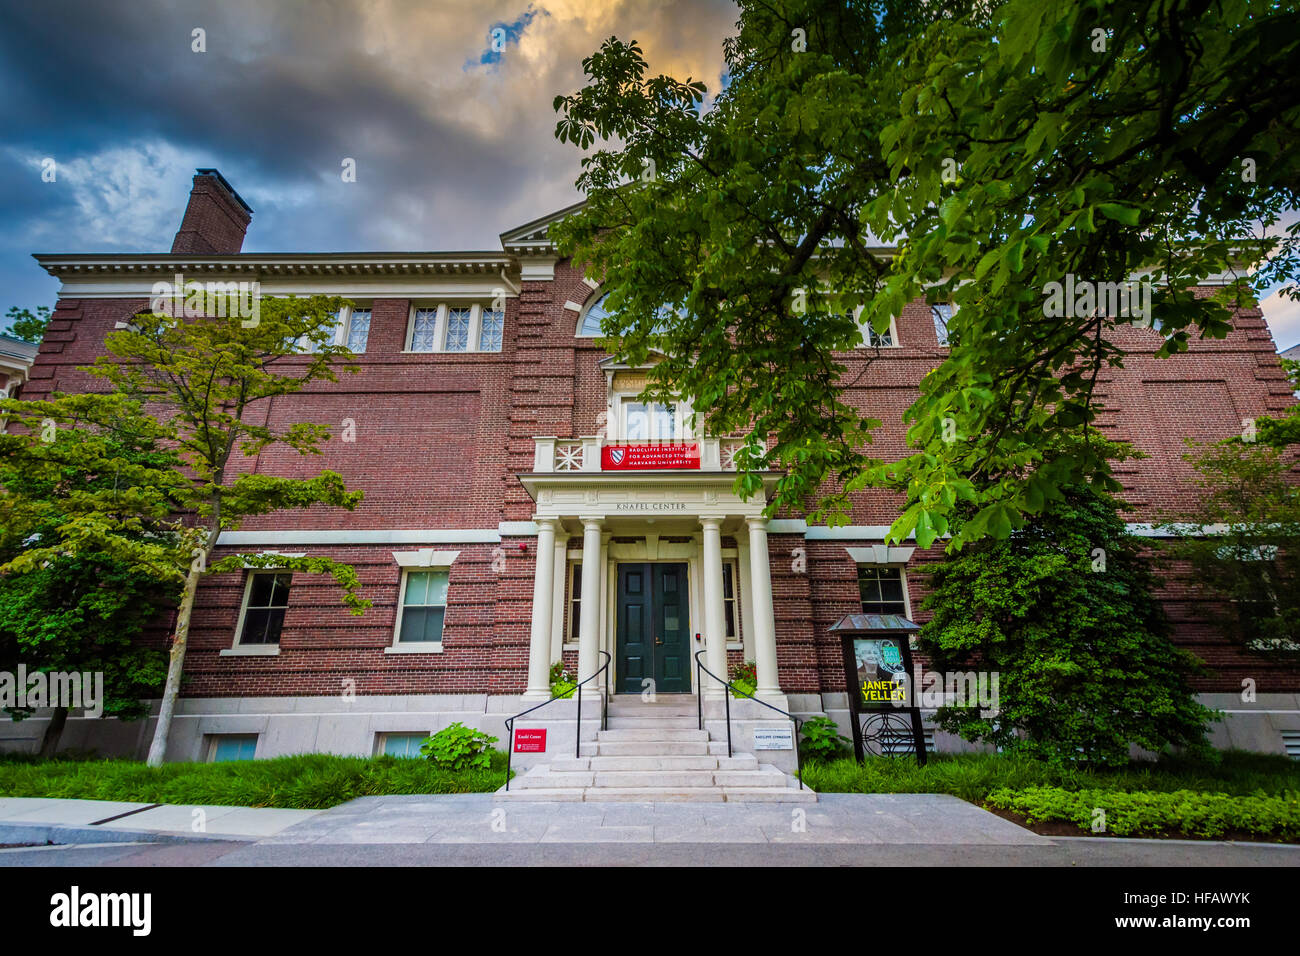 The Knafel Center at the Radcliffe Institute for Advanced